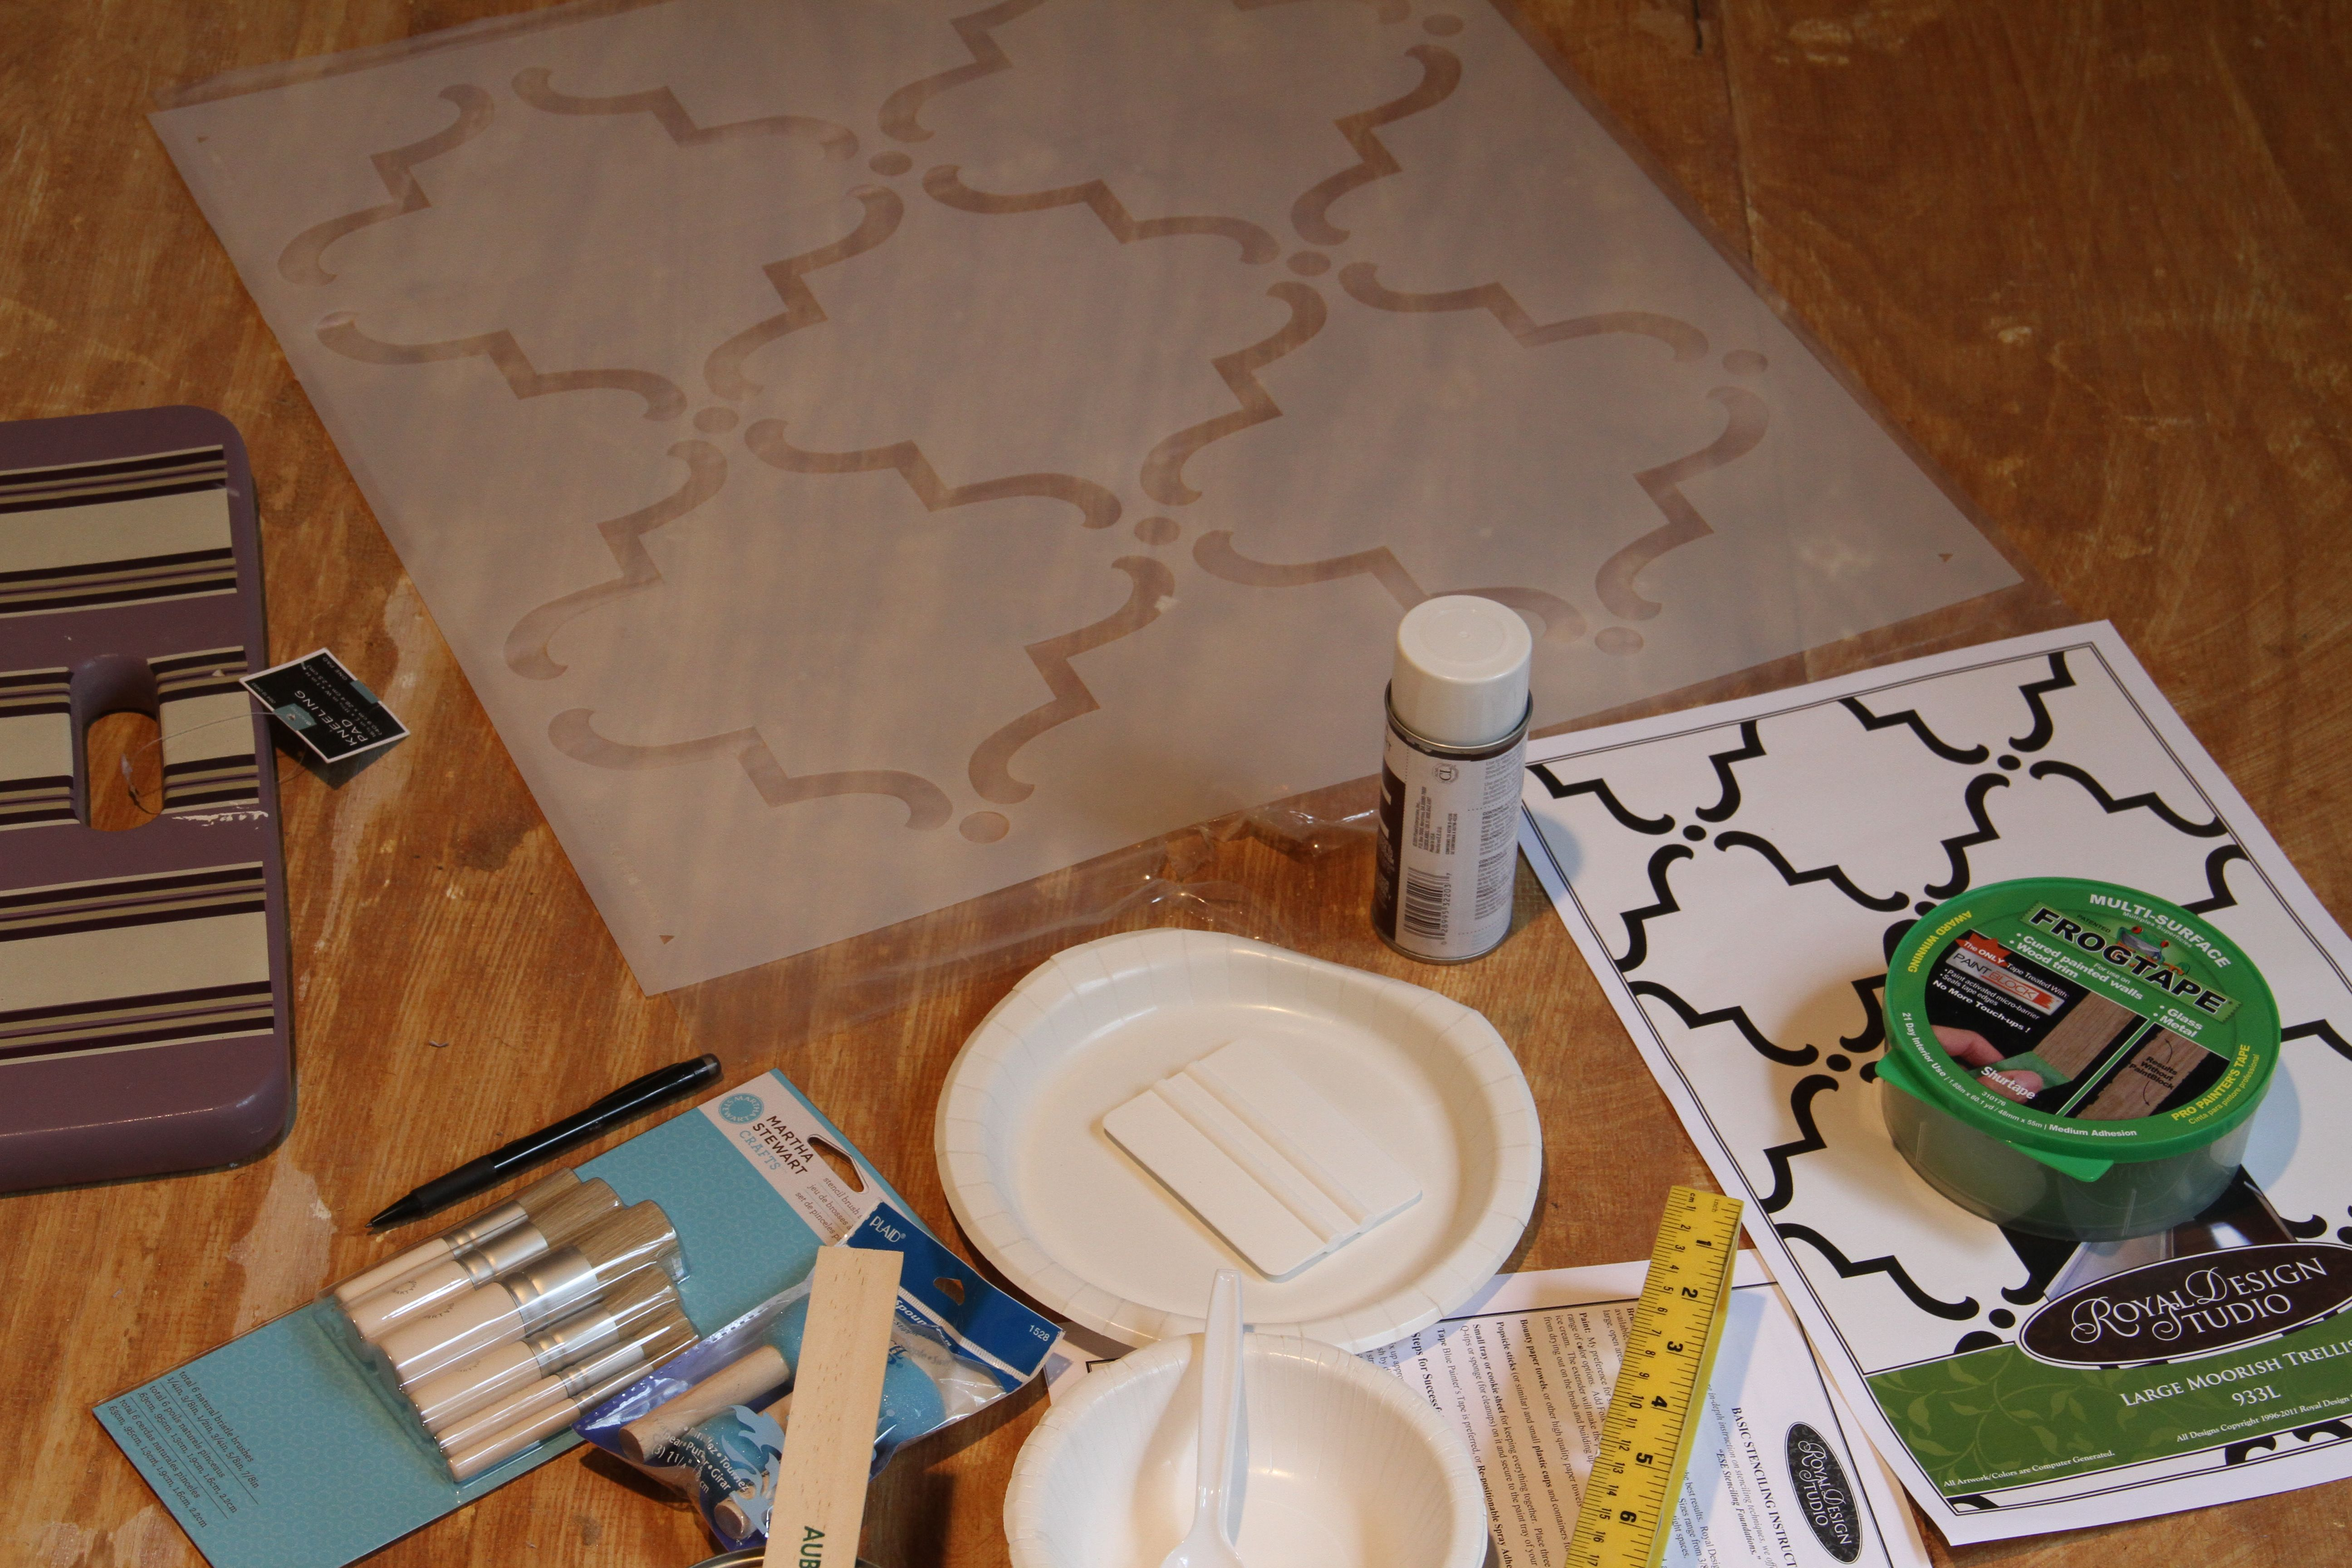 My stencil, and accoutrements. Mom wanted an eclectic mix of styles, one of which being Moorish, northern African inspired. So, repetitive scrolly geometric shapes it is!